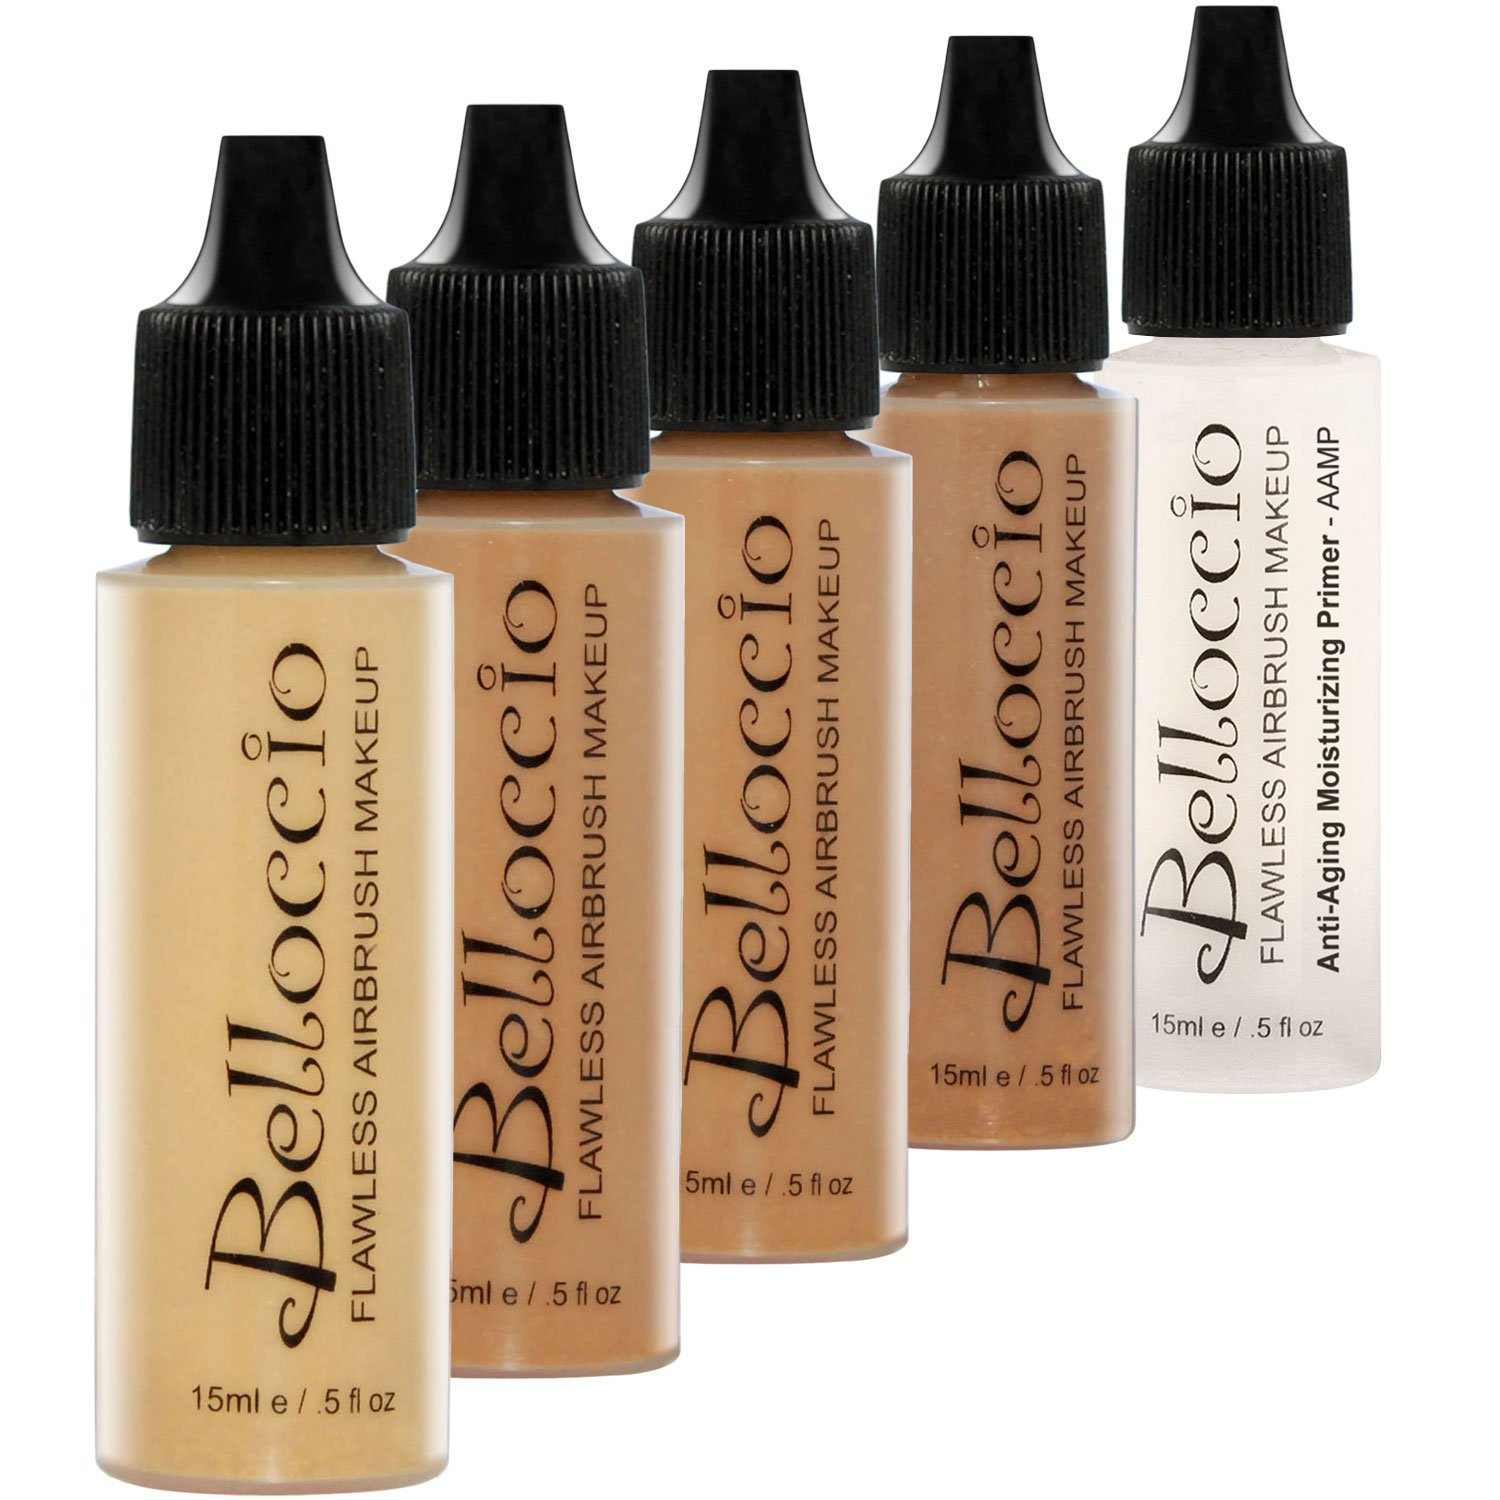 Belloccio Tan Color Shade Foundation Set - Professional Cosmetic Airbrush Makeup in 1/2 oz Bottles